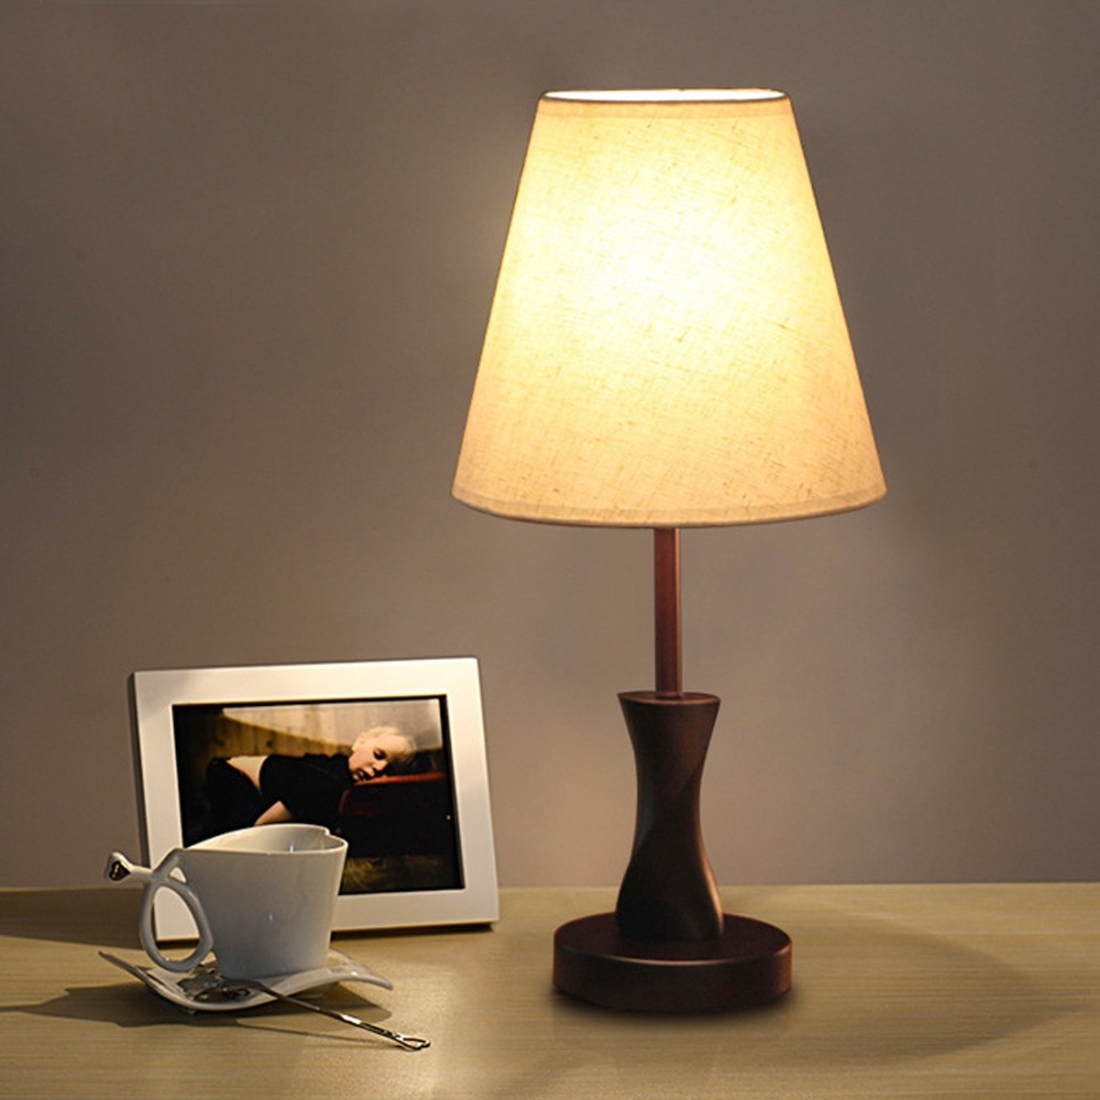 Ywxlight Dimming Remote Control Decorative Table Lamp